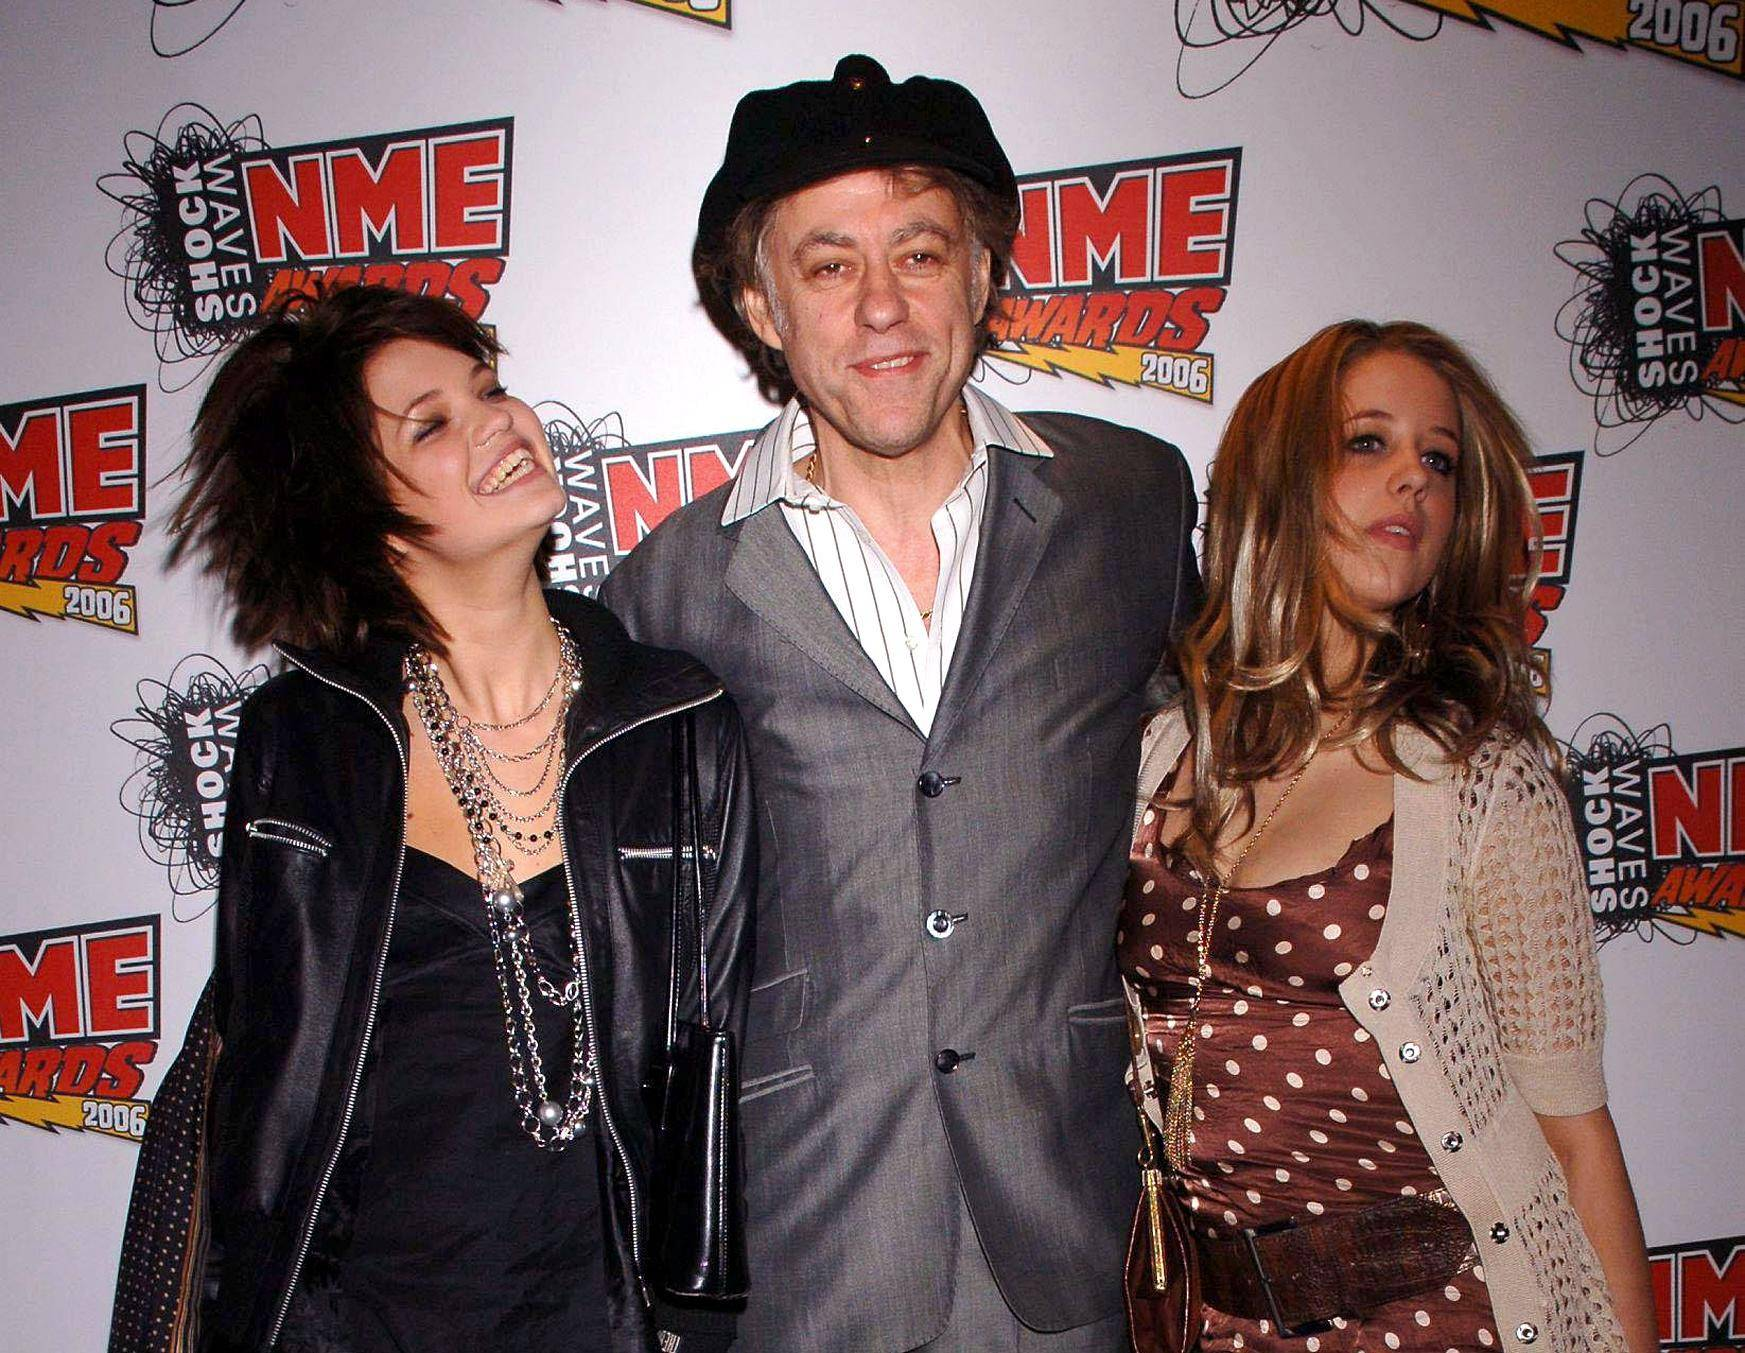 Bob Geldof with his daughters Pixie, left, and Peaches.